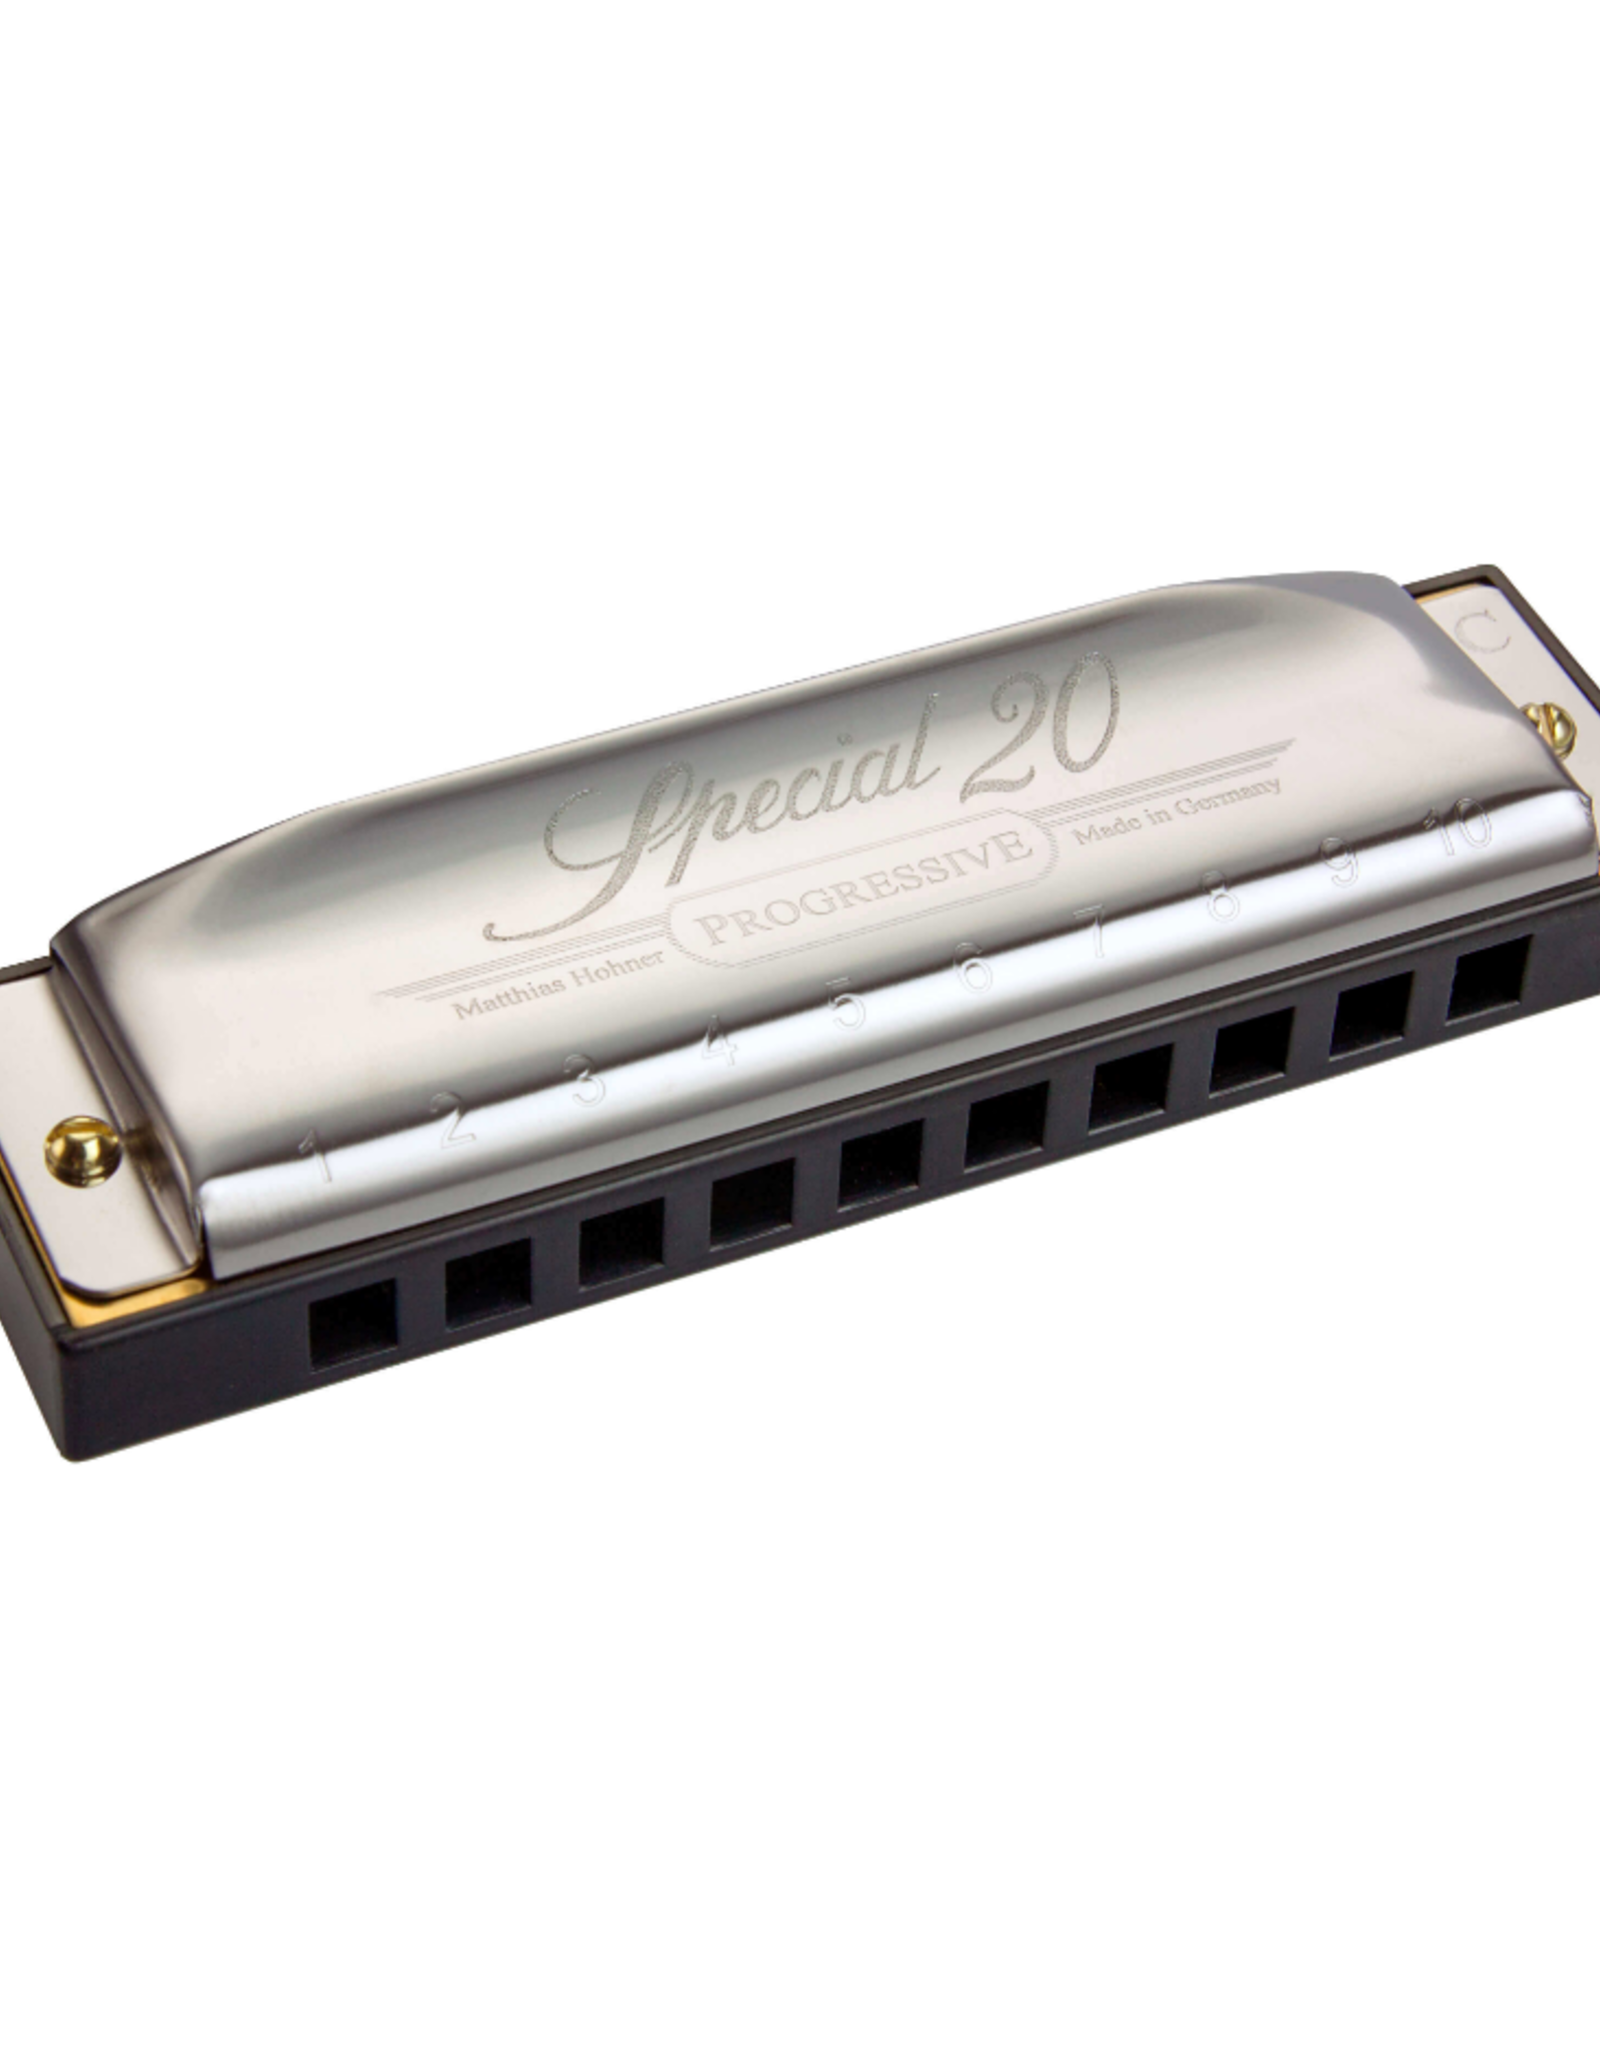 Hohner Hohner Special 20 Harmonica D